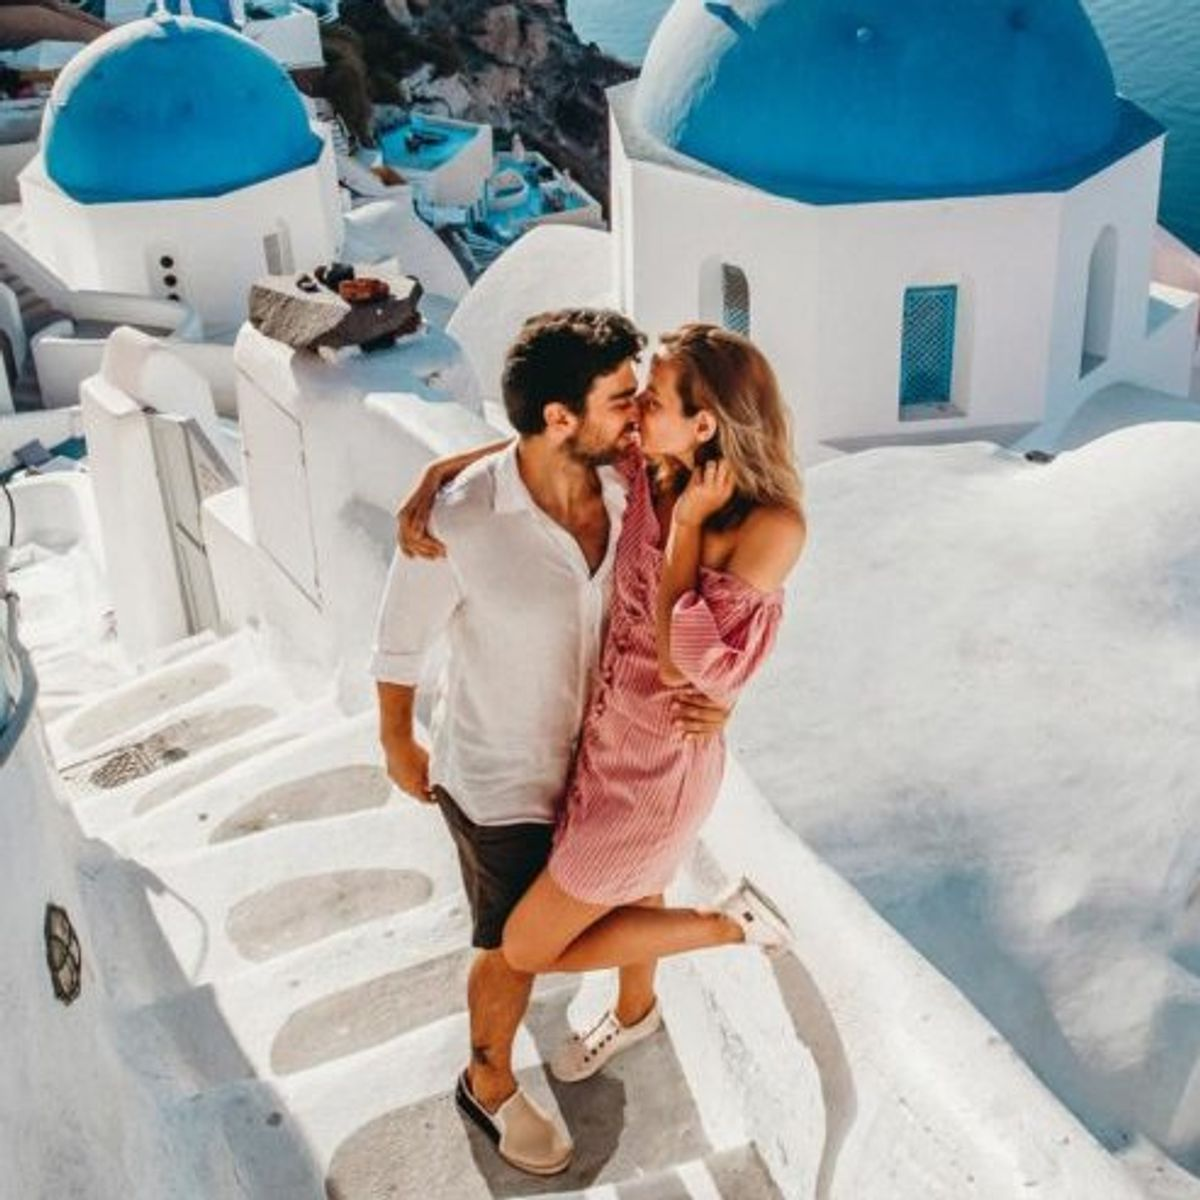 7 Signs Your Man is Going to Propose